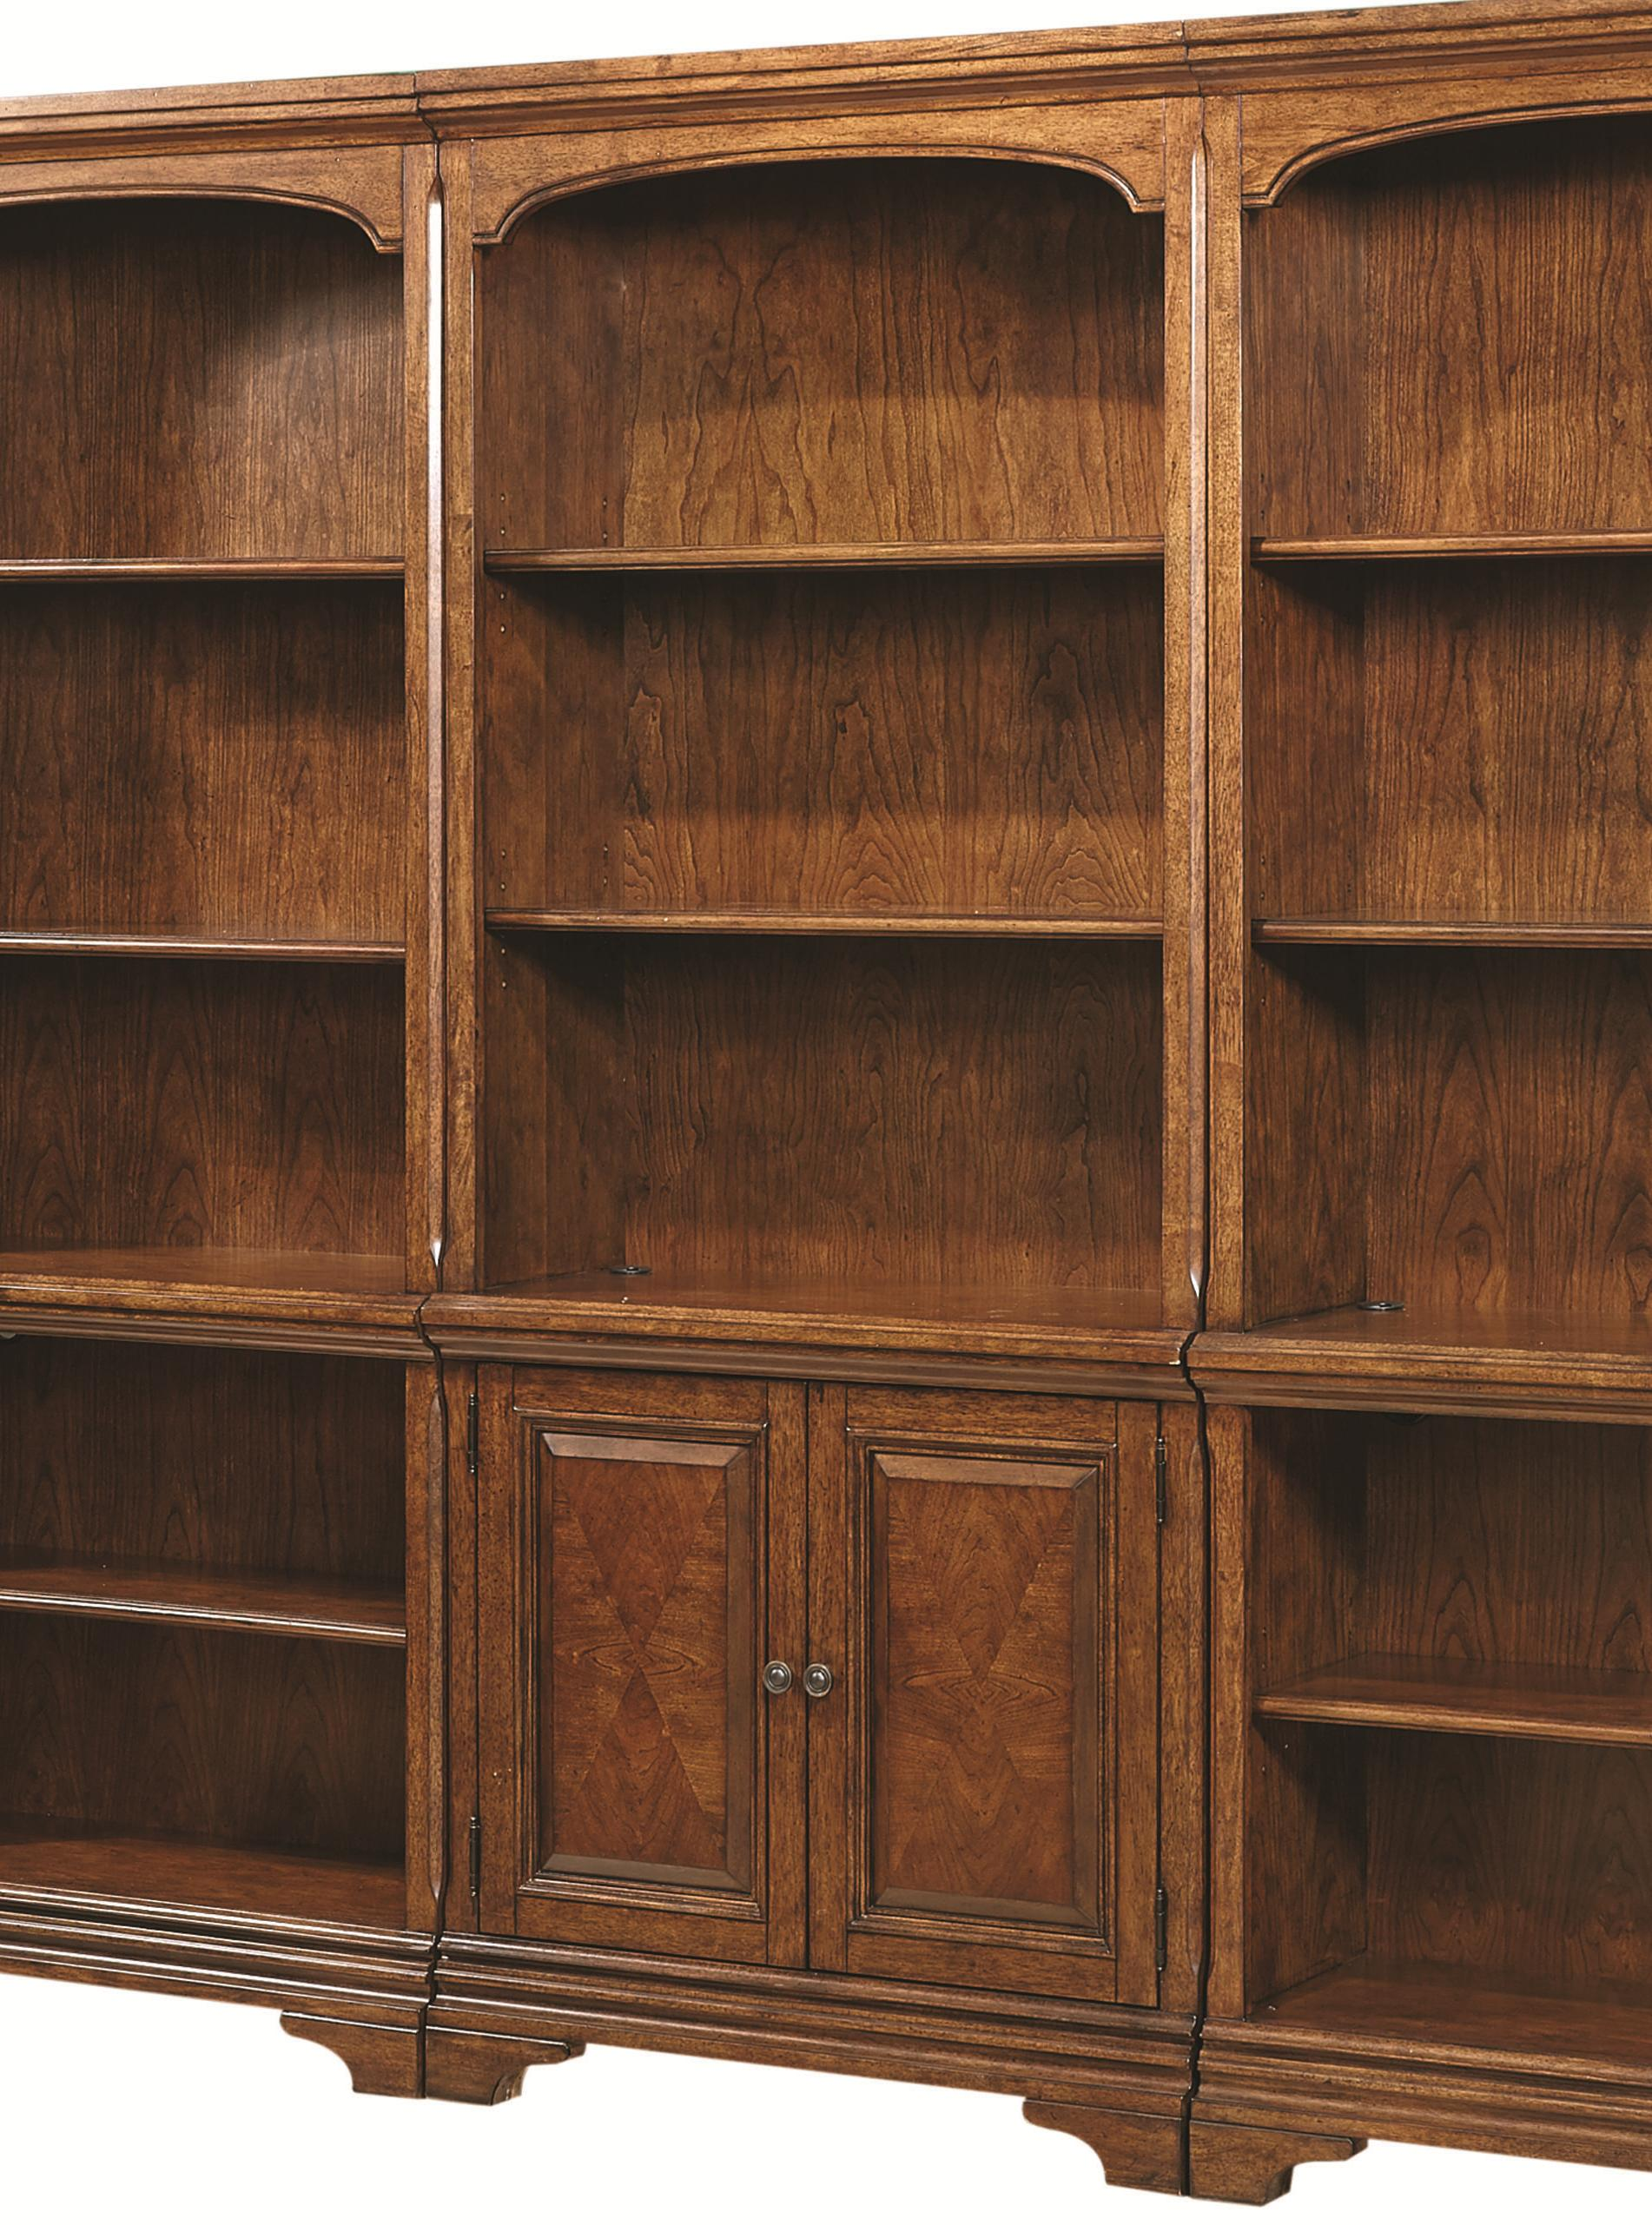 Hawthorne Door Bookcase by Aspenhome at Stoney Creek Furniture